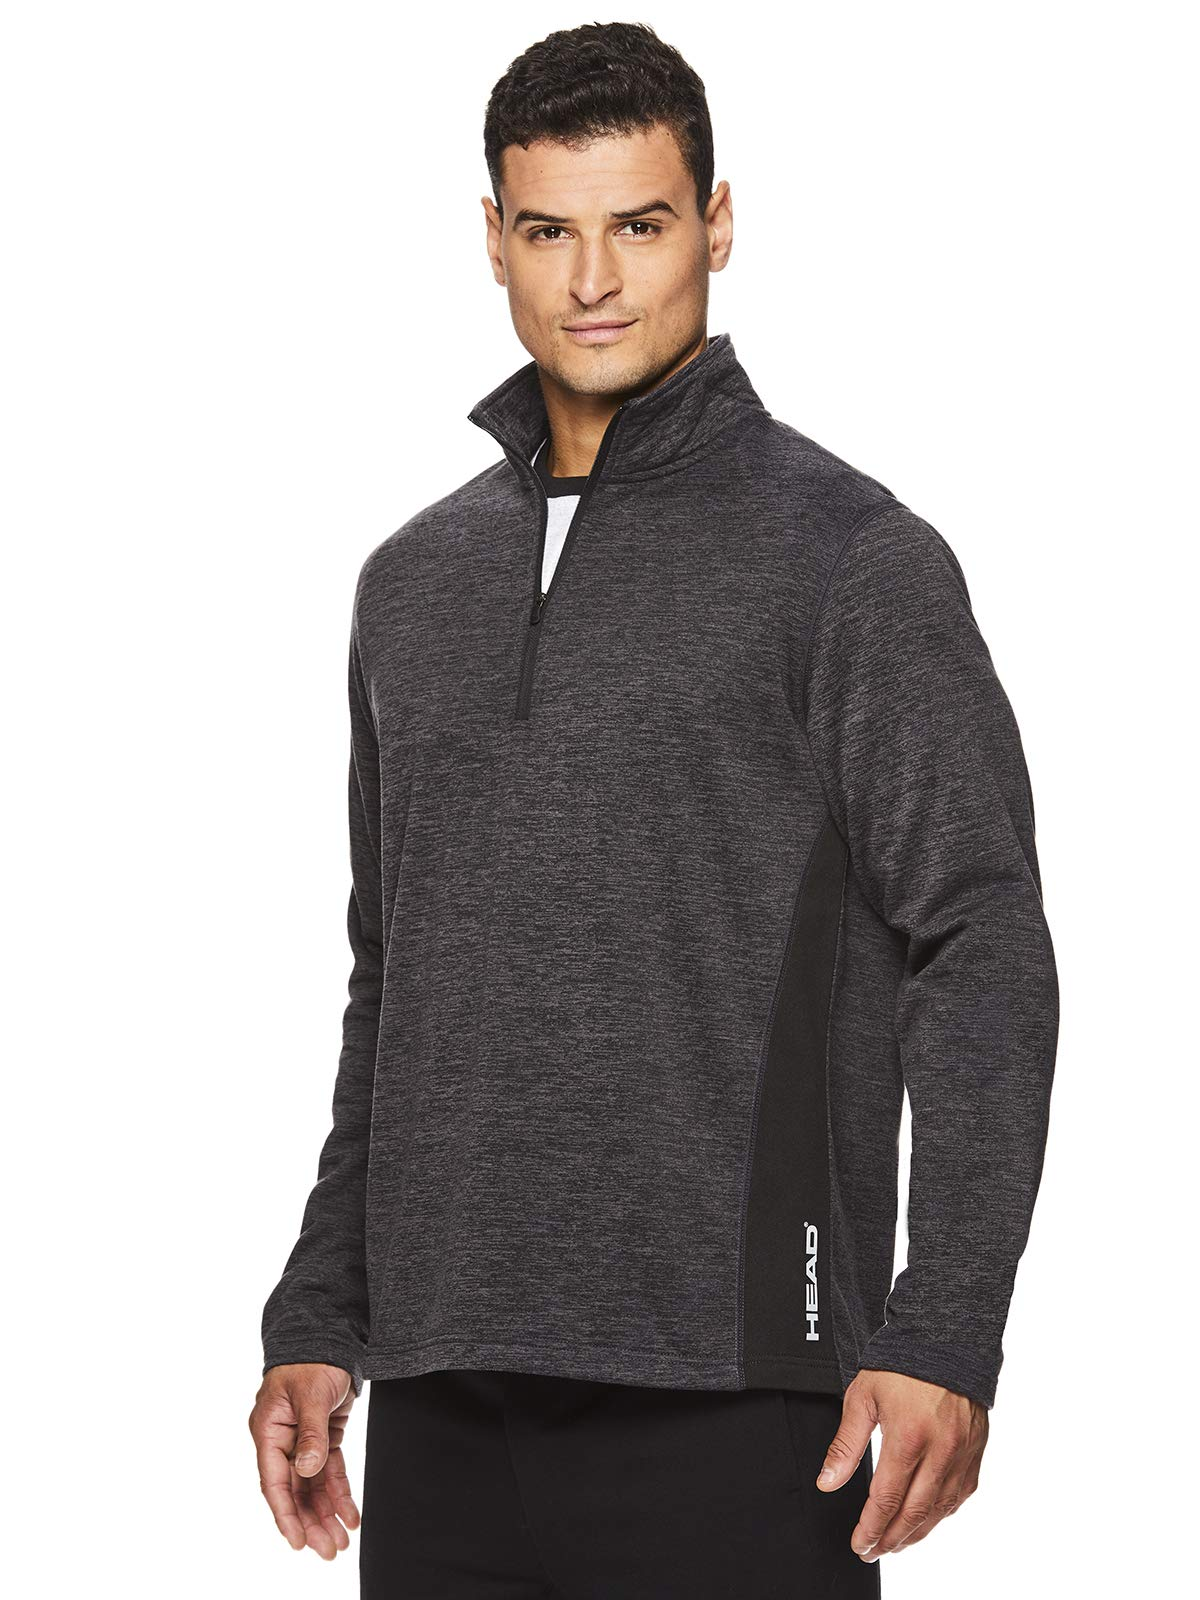 HEAD Men's 1/4 Zip Up Activewear Pullover Jacket - Long Sleeve Running & Workout Sweater - Warm Up Black Heather, Small